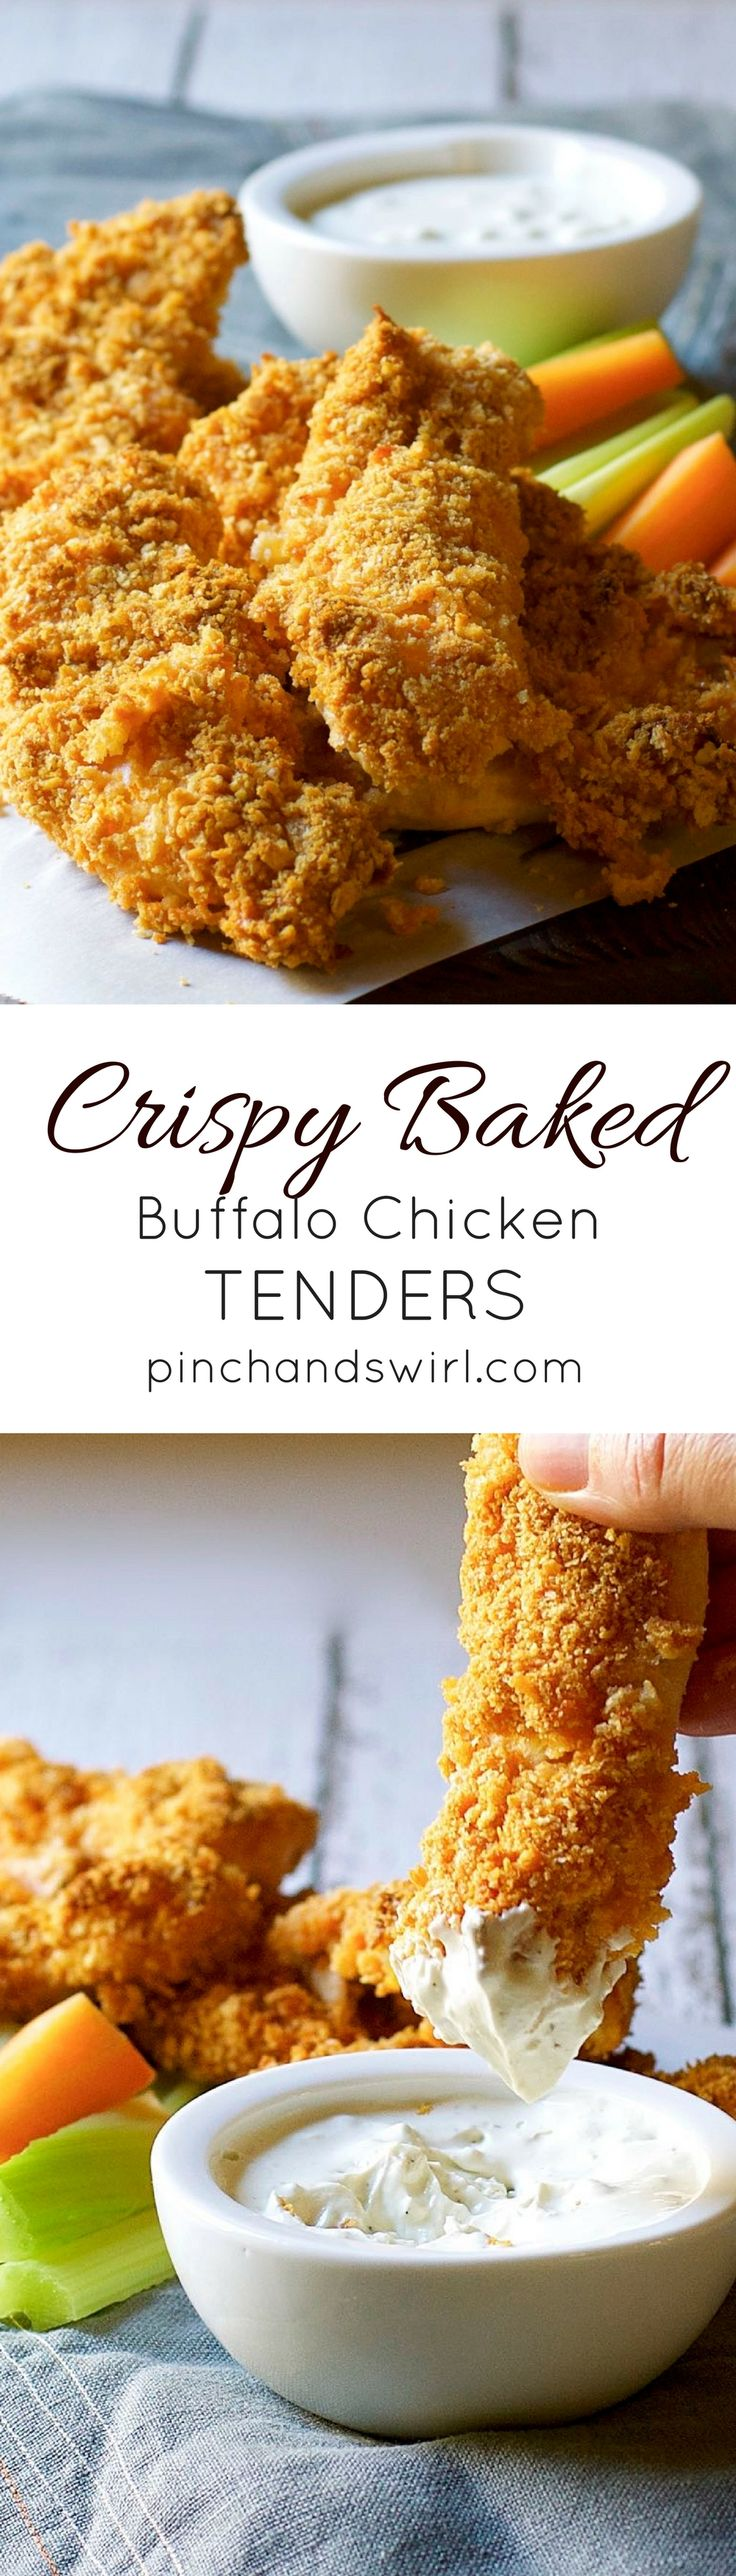 Crispy Baked Buffalo Chicken Tenders - truly crispy, knock your socks off delicious! The perfect party food! #partyfood #easyrecipes via @pinchandswirl